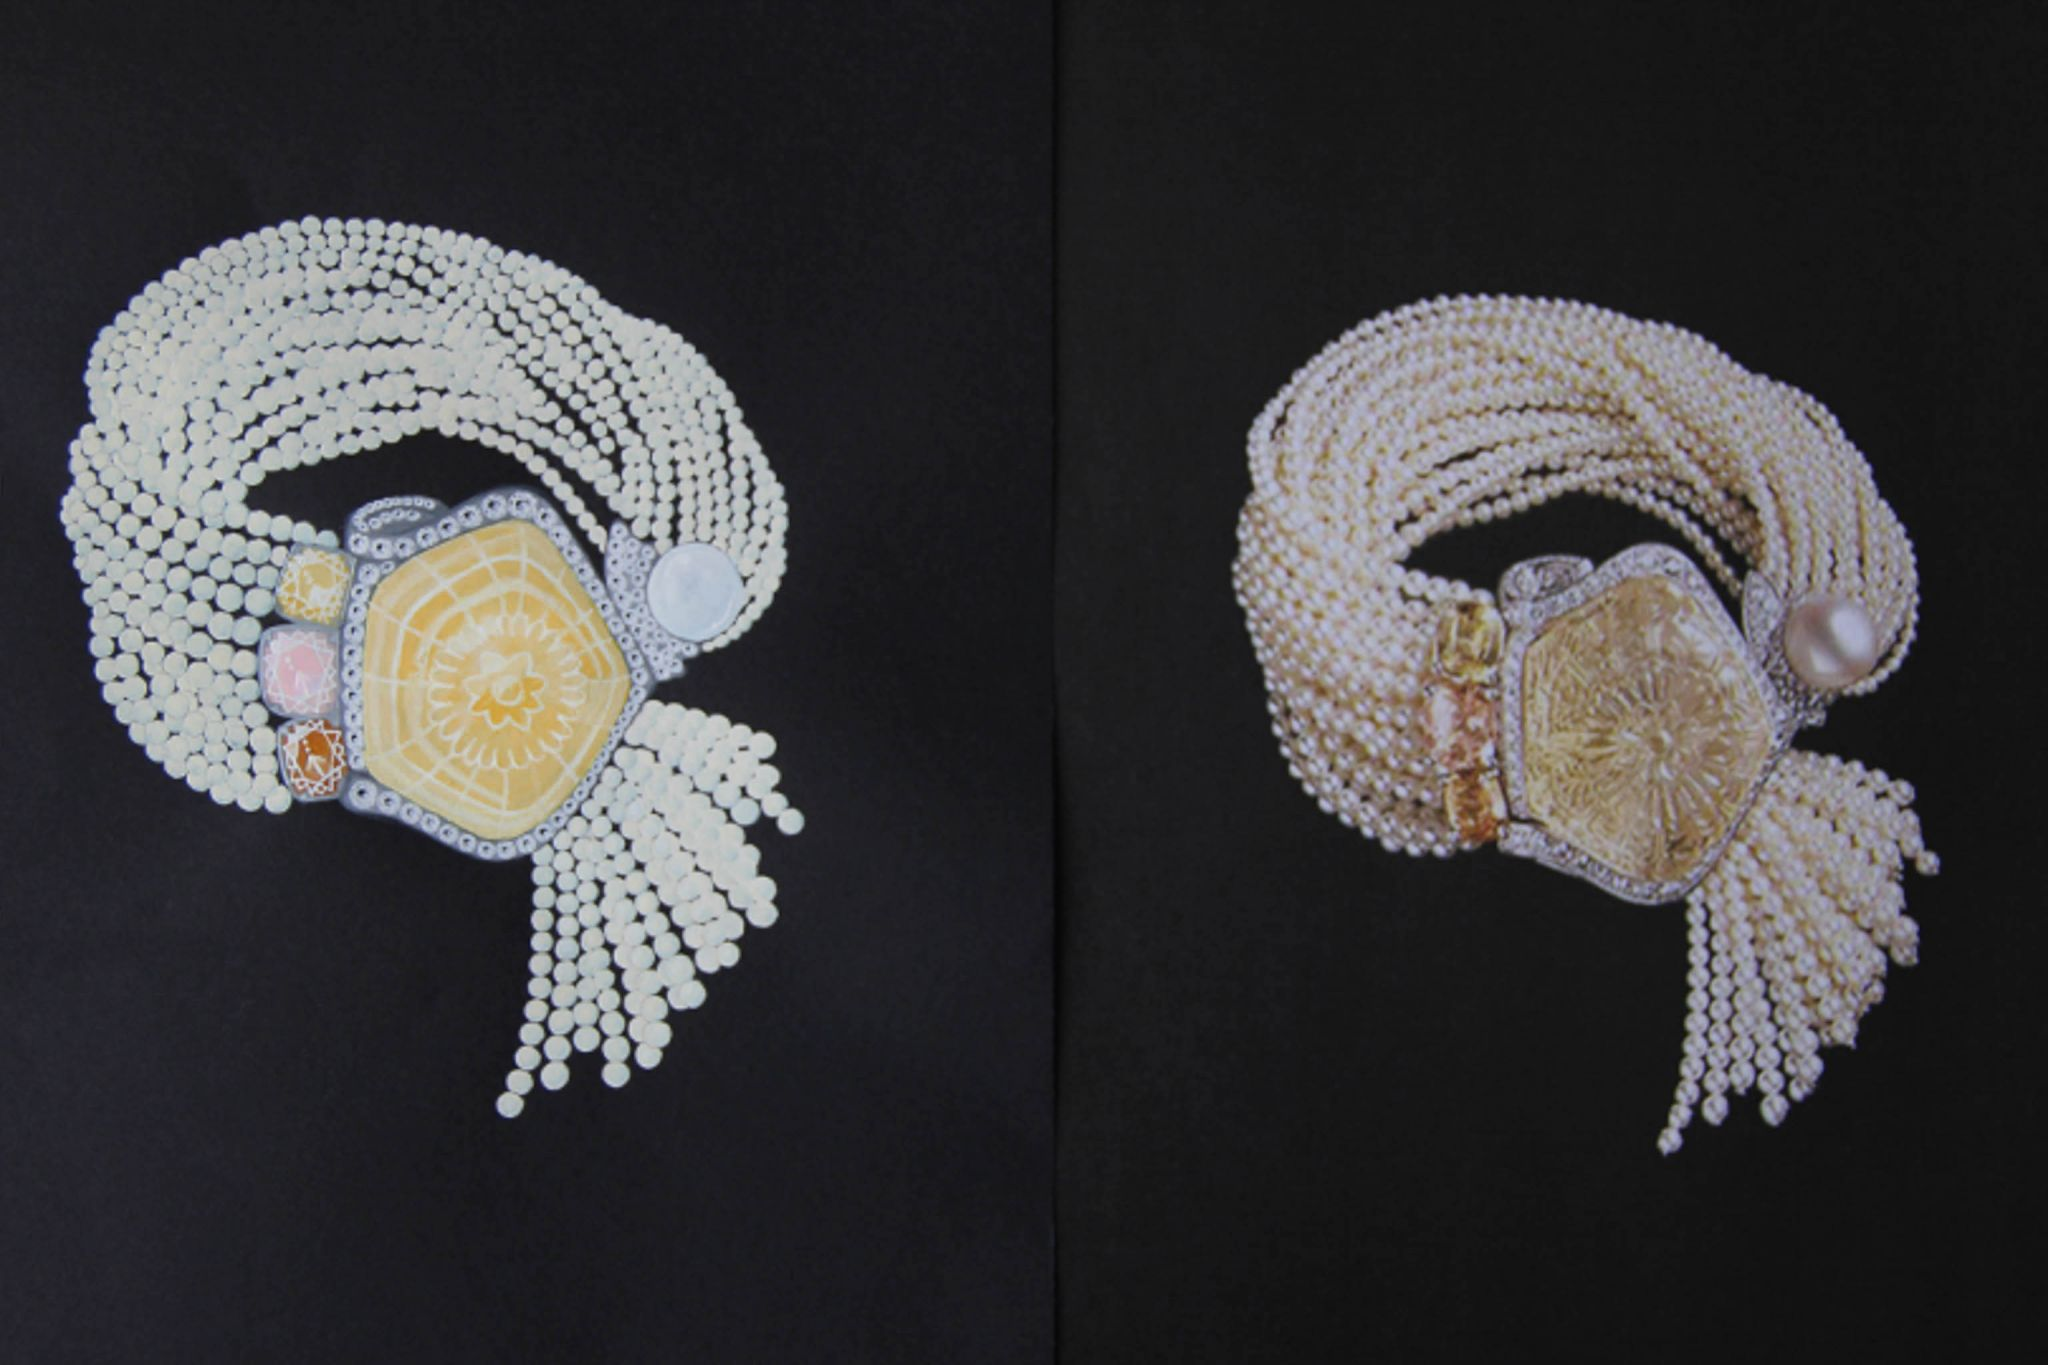 Shine & draw Jewelry drawing reproduction white pearl bracelet cartier